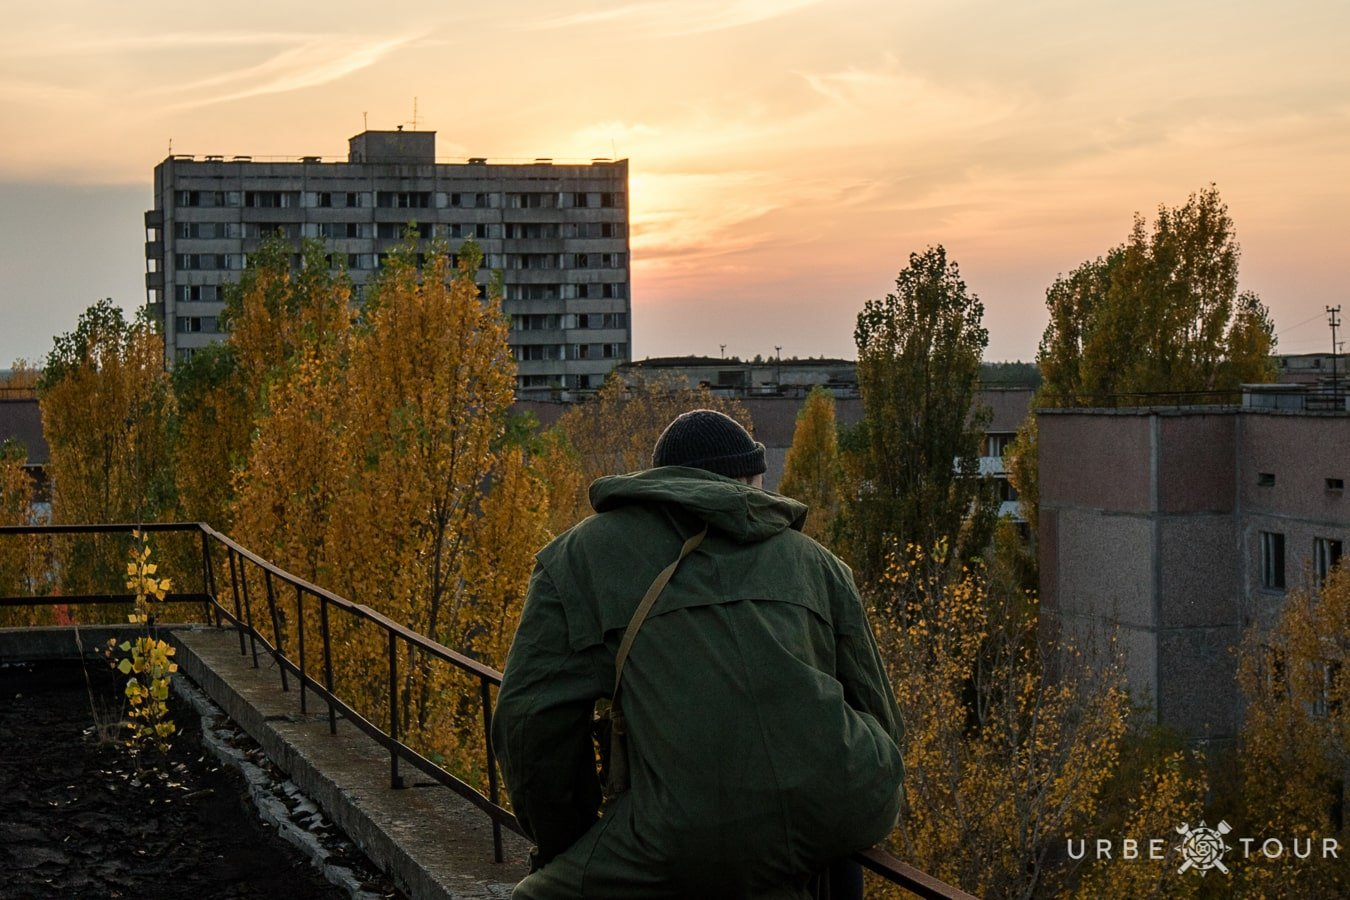 chernobyl-exploration-tour-throw-golden-autumn-49 Chernobyl URBEX Tour Through Golden Autumn